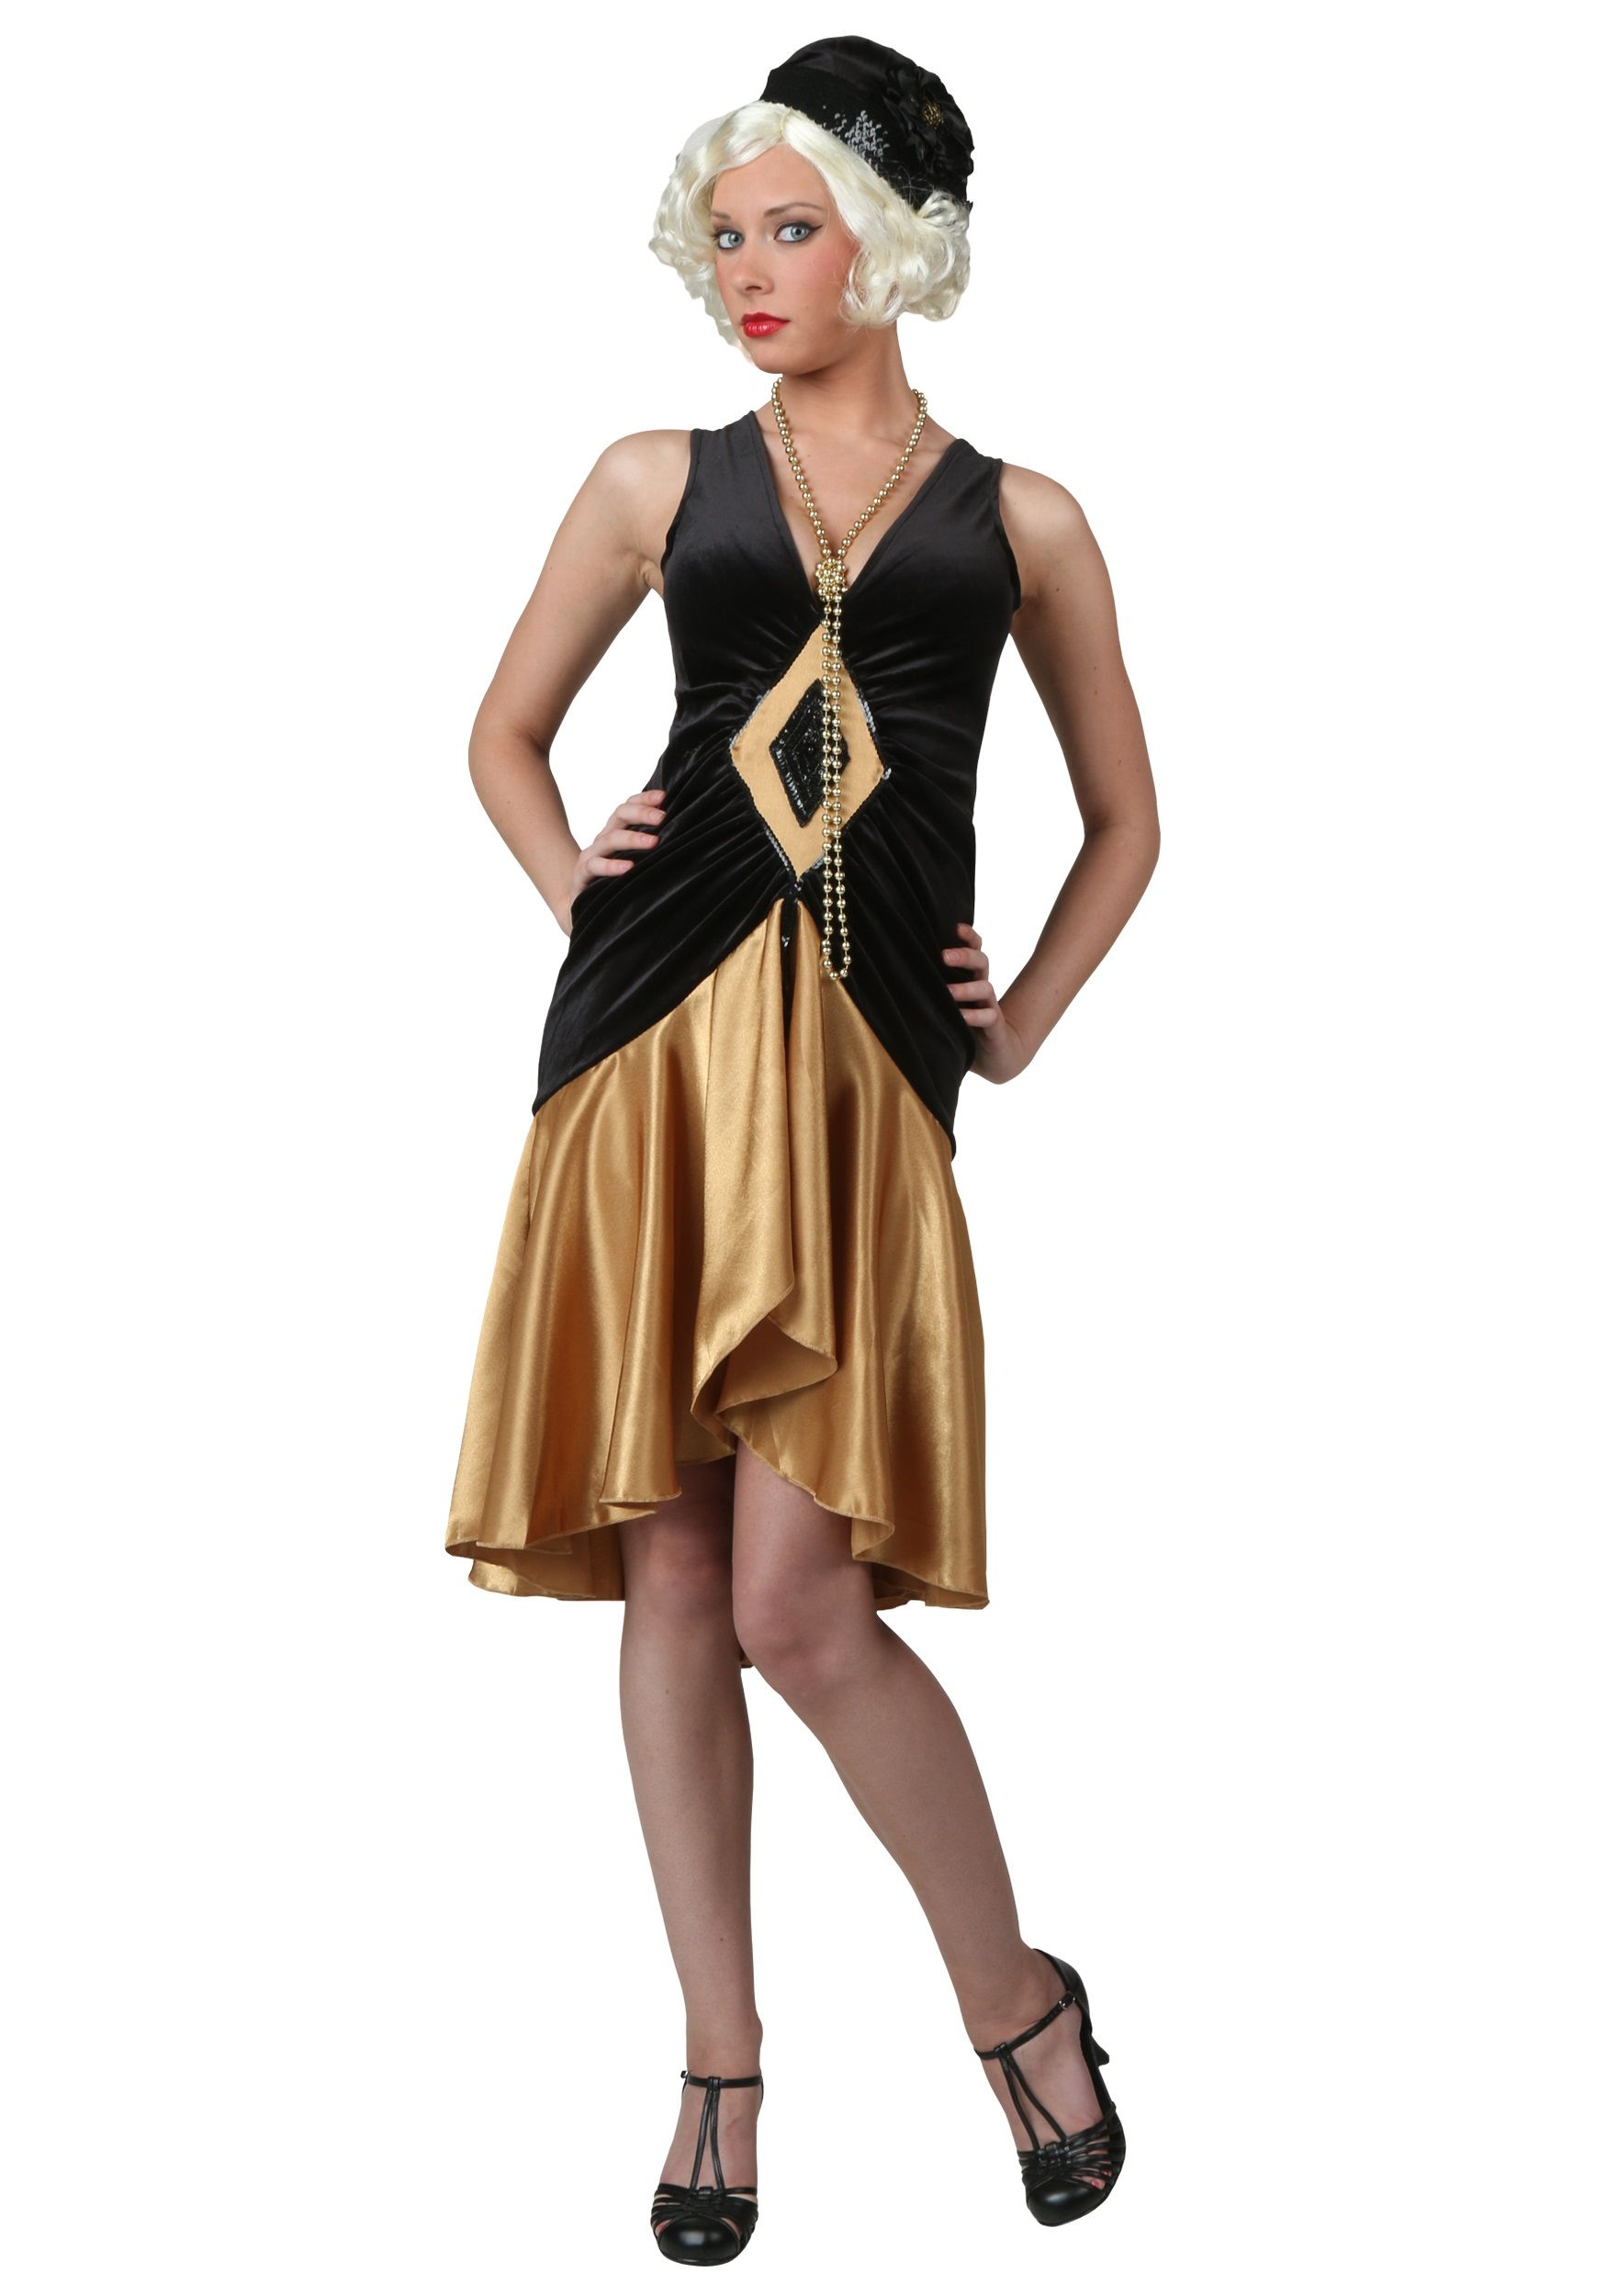 Roaring 20's Plus Size Flapper Costume | Flappers, Costumes and 1920s